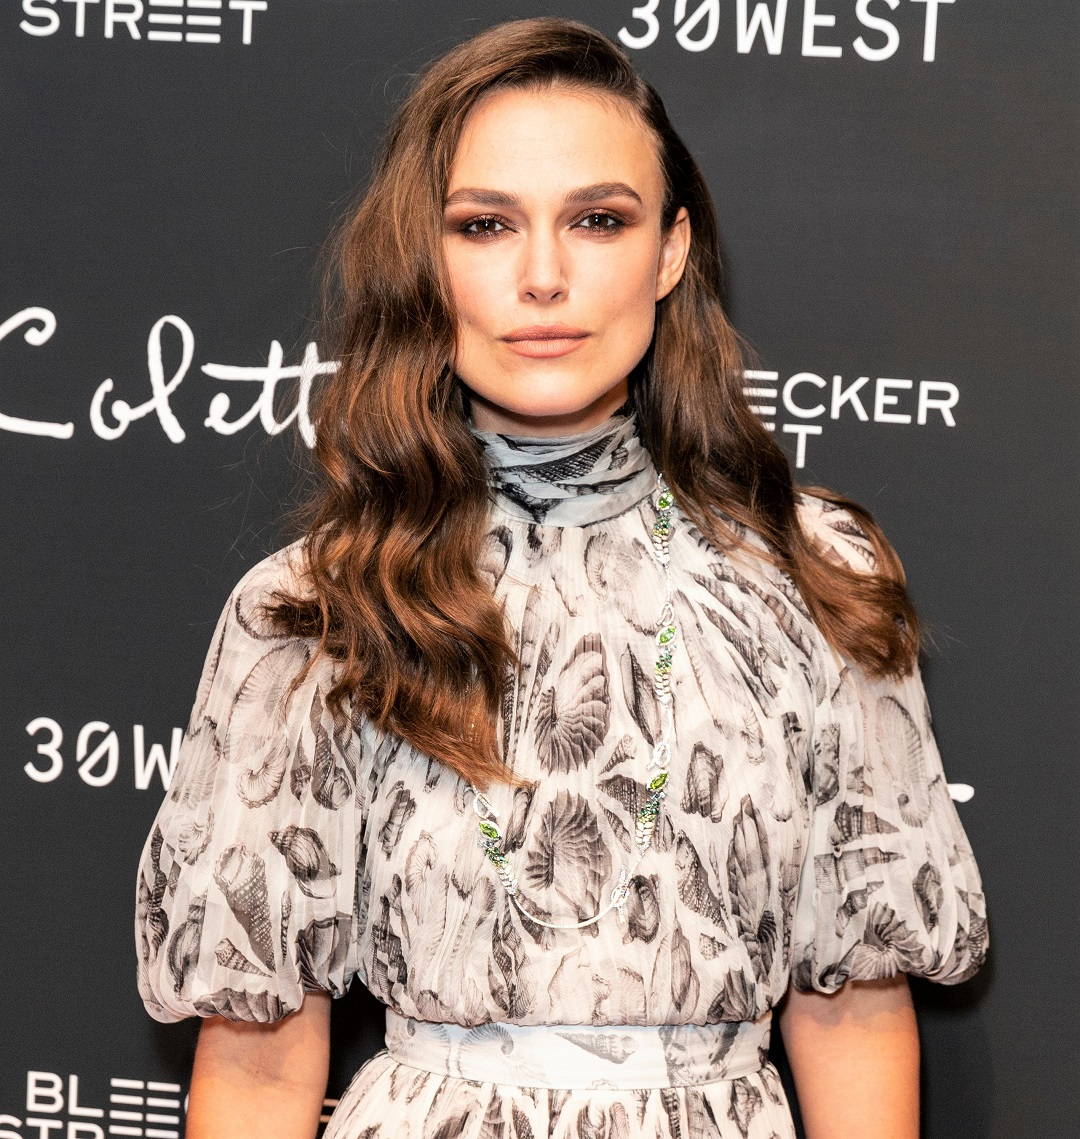 Keira Knightley Movie Premiere at MoMa